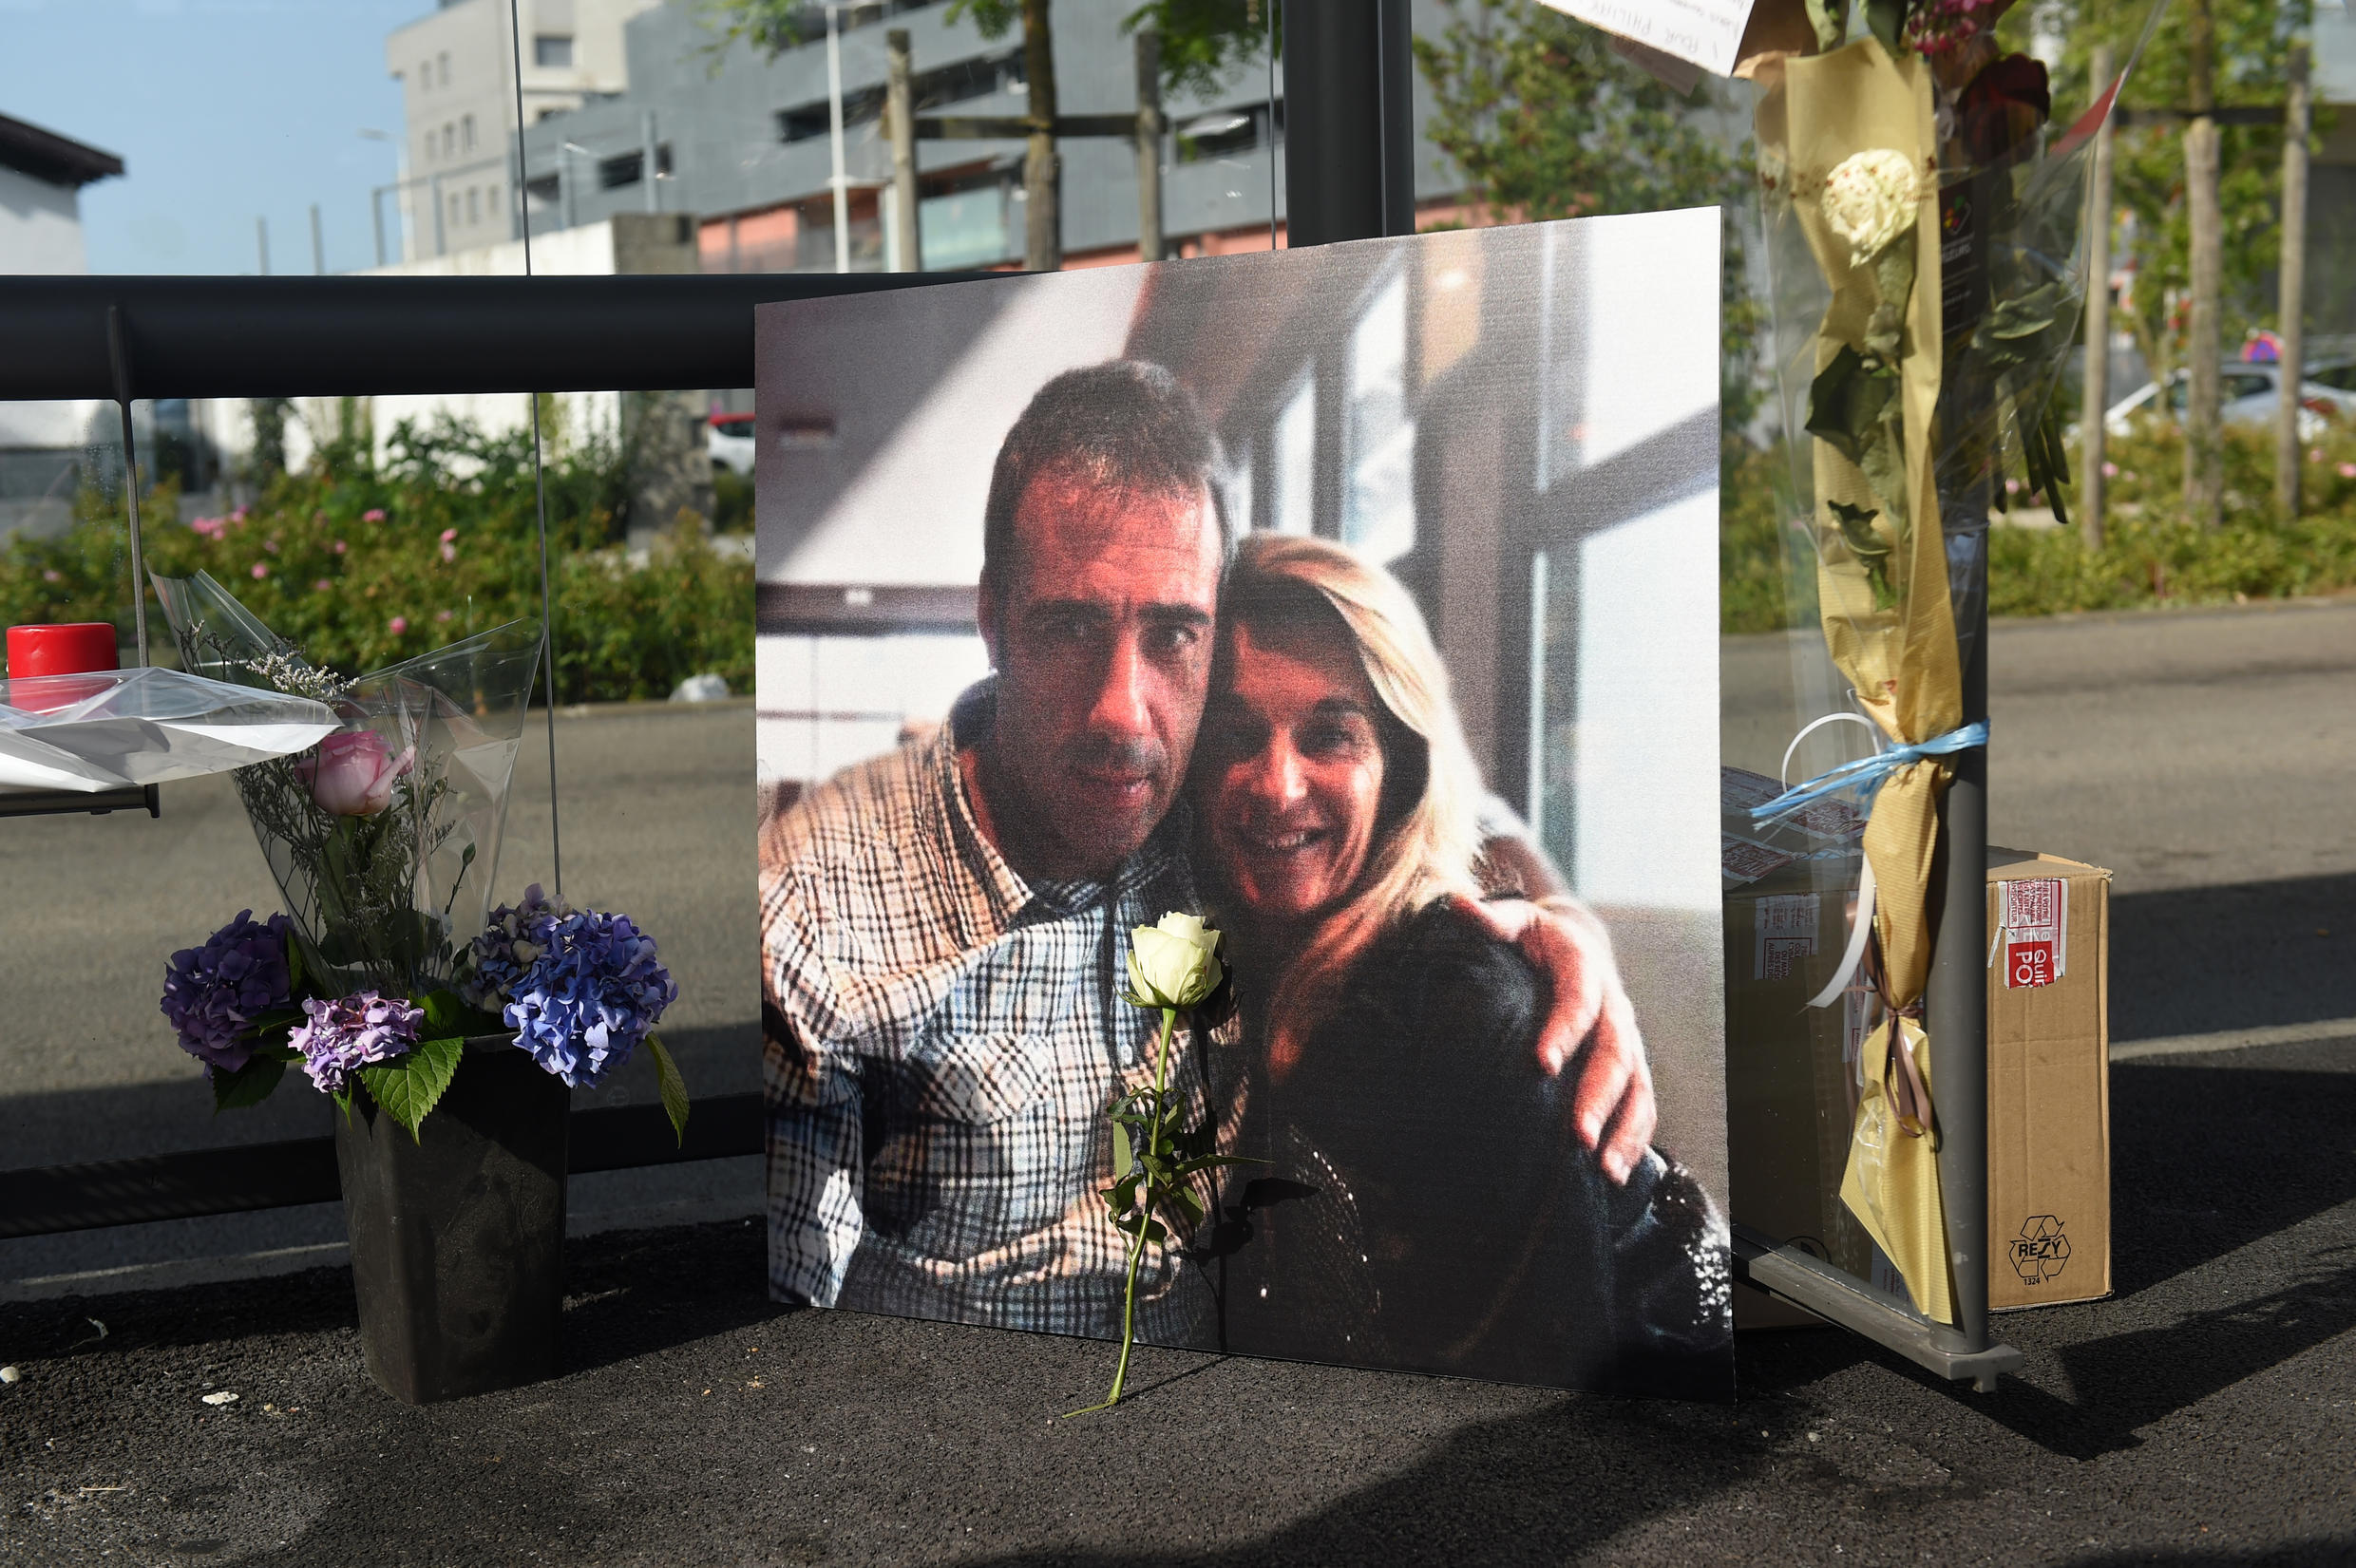 A picture of Veronique Monguillot and Philippe Monguillot, a bus driver declared brain dead after being attacked for refusing to let aboard a group of people who were not wearing face masks, is displayed during a white march in Bayonne, southwestern France, on July 8, 2020.